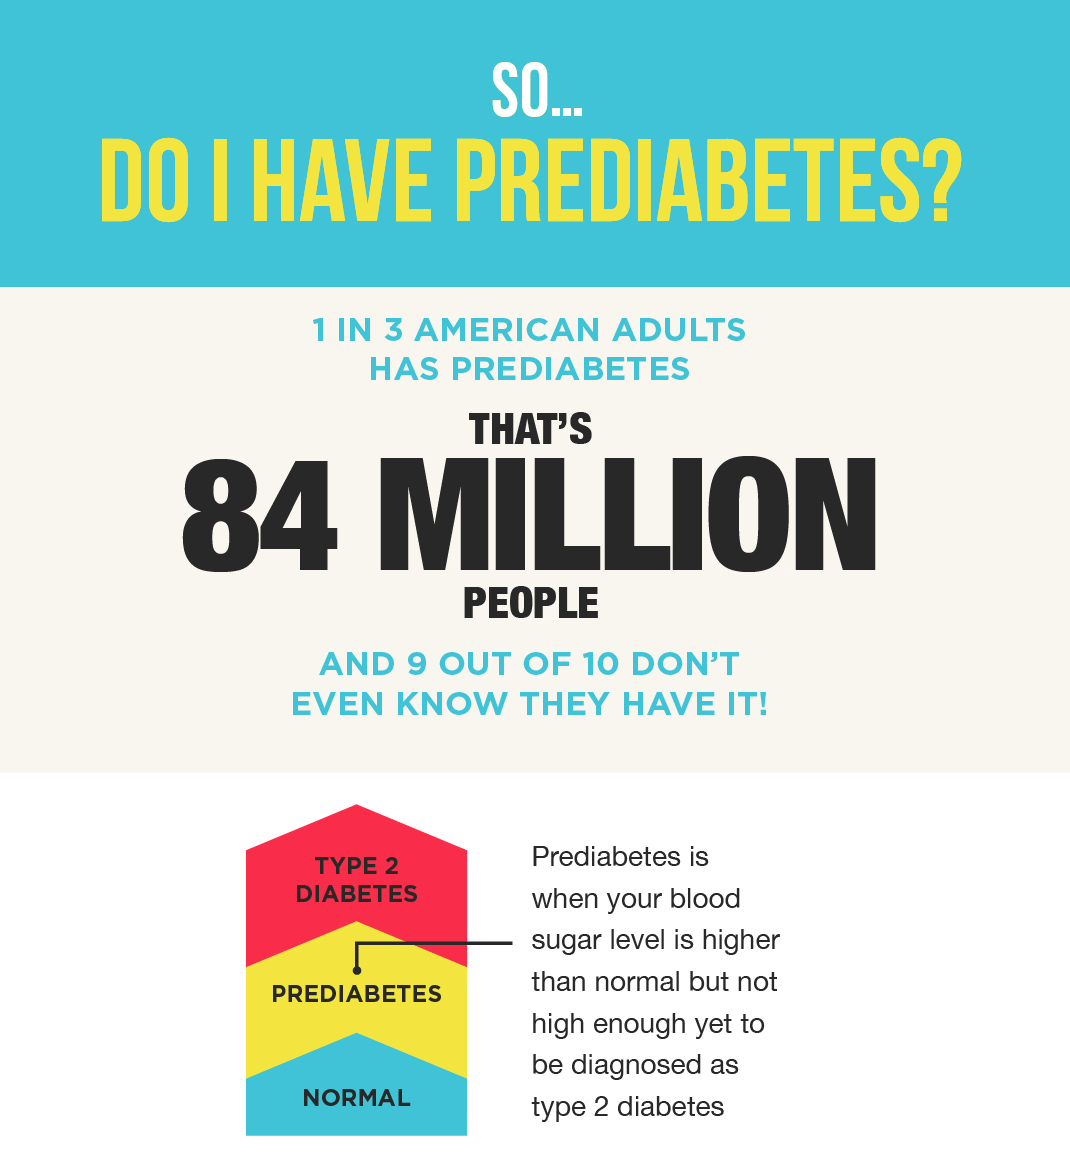 Do you have prediabetes? take the prediabetes test to find out